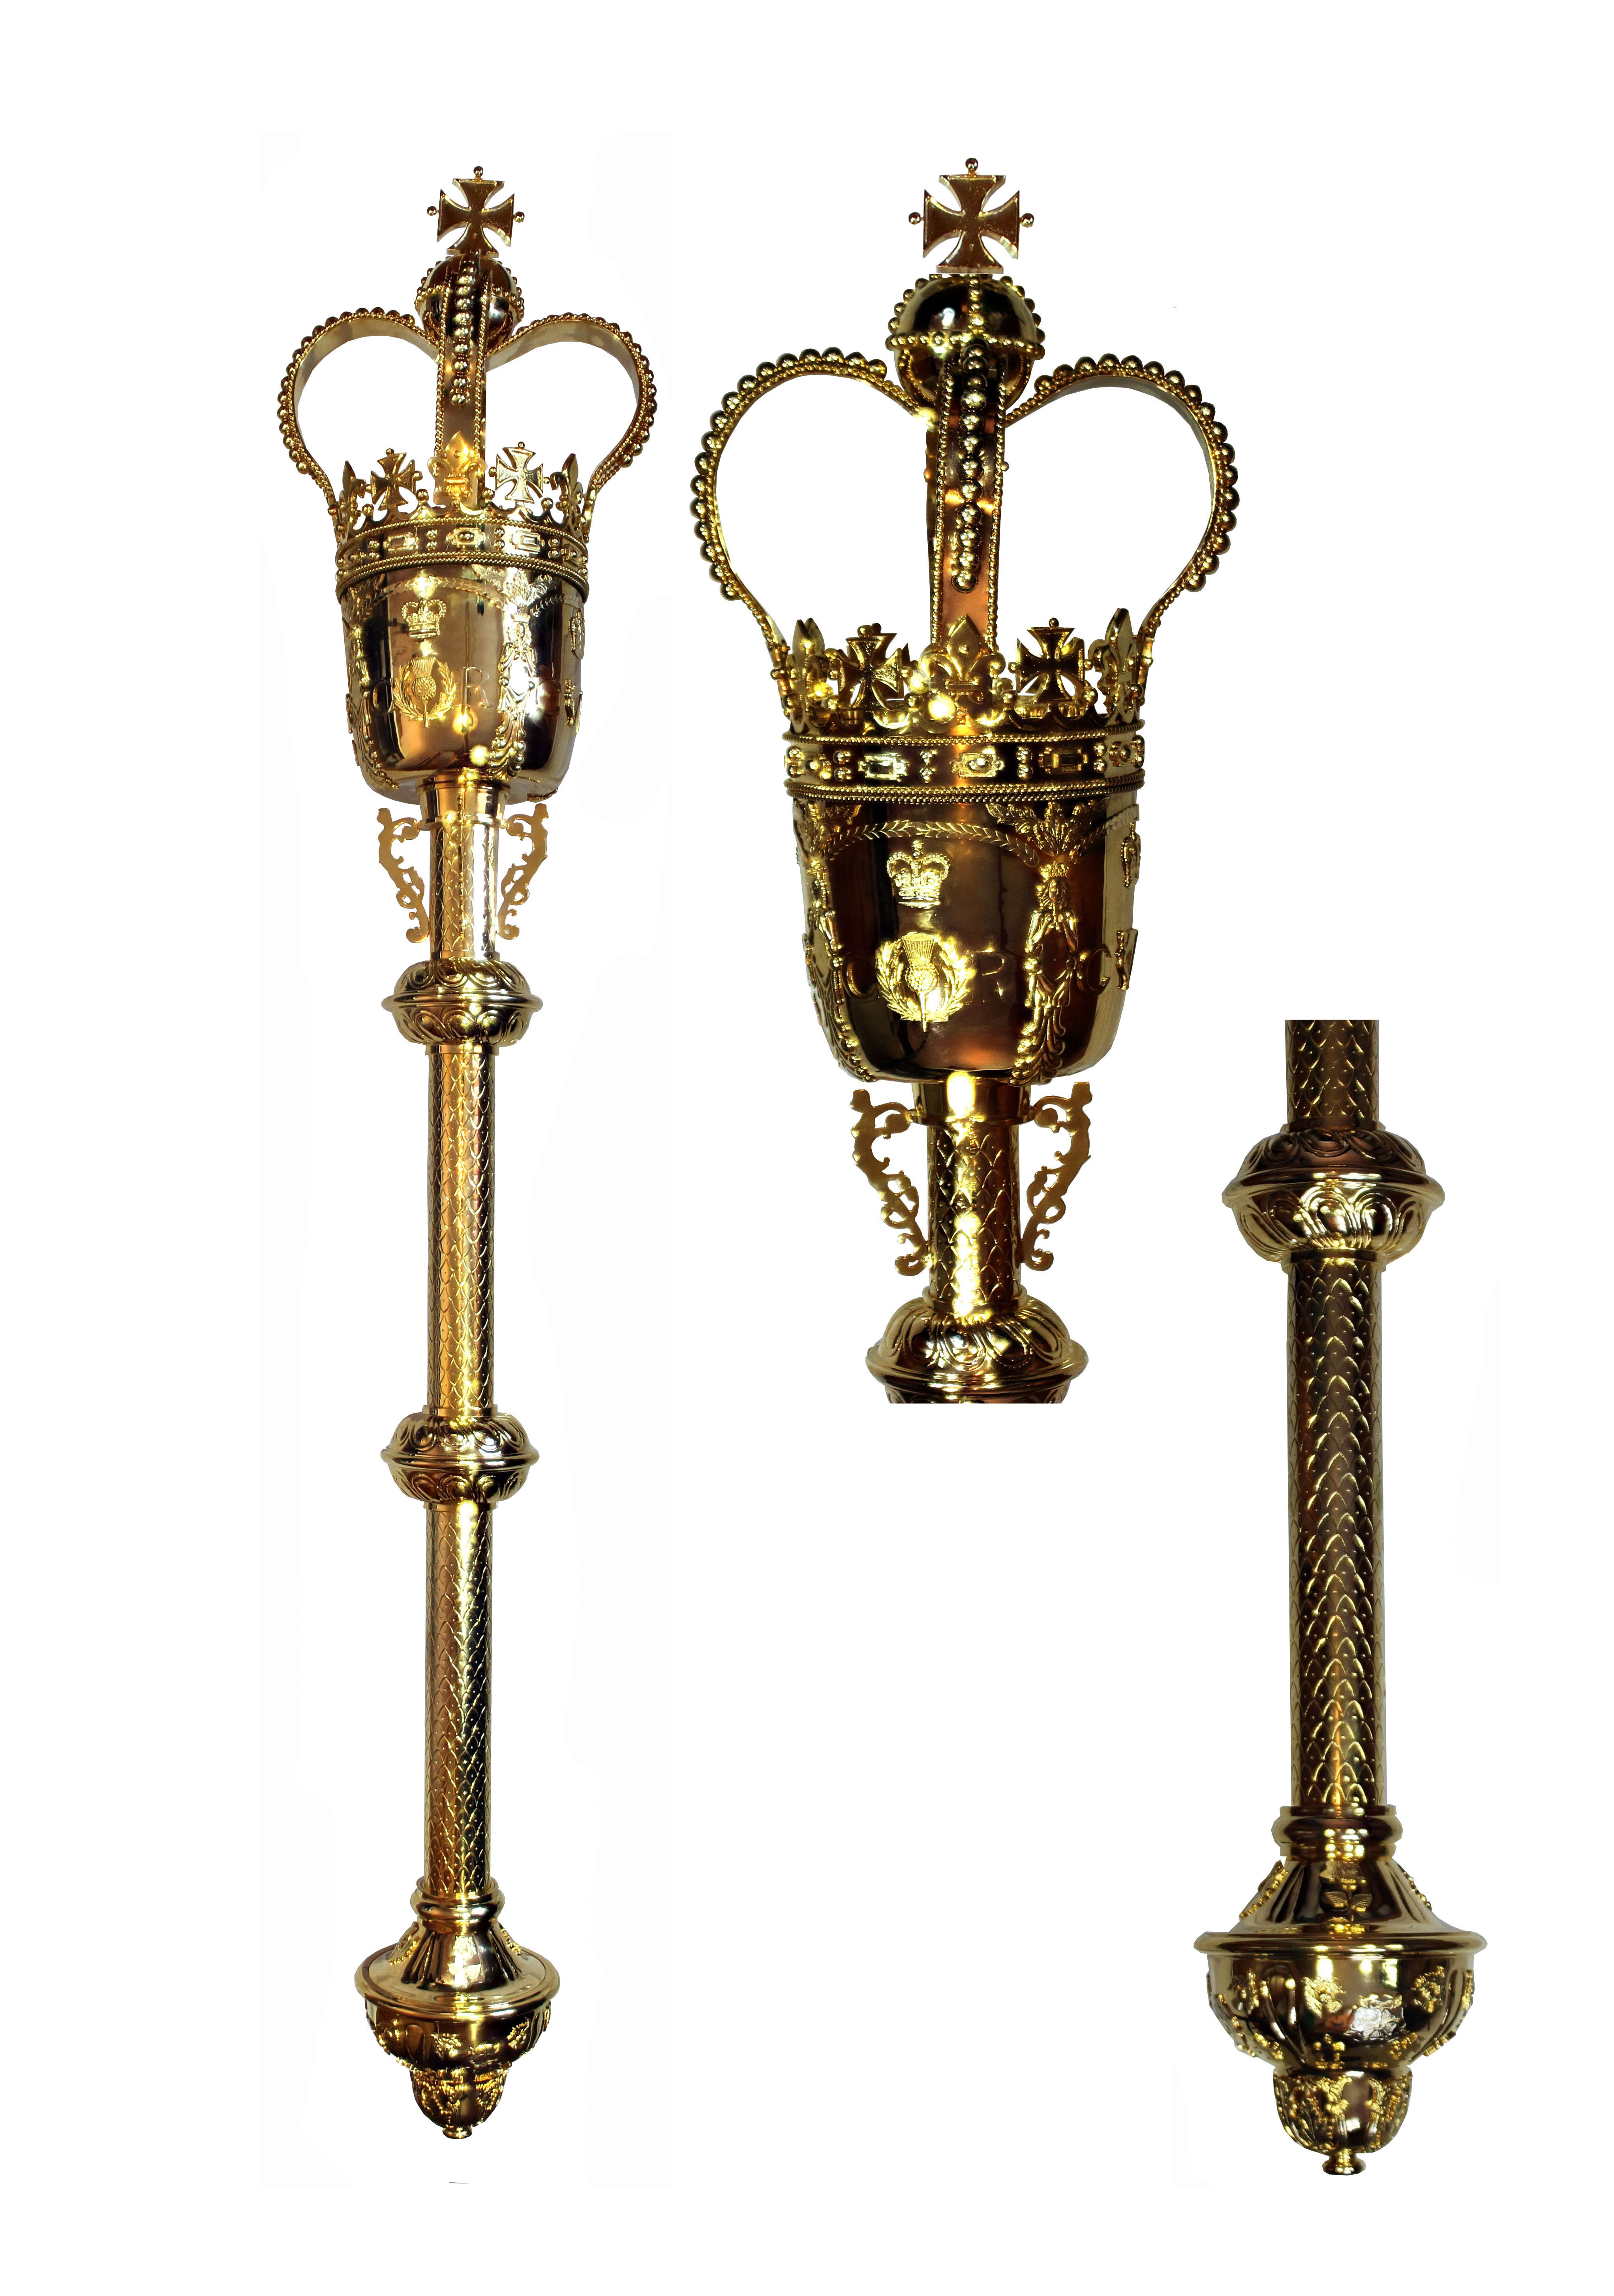 The Royal Mace Royal Exhibitions